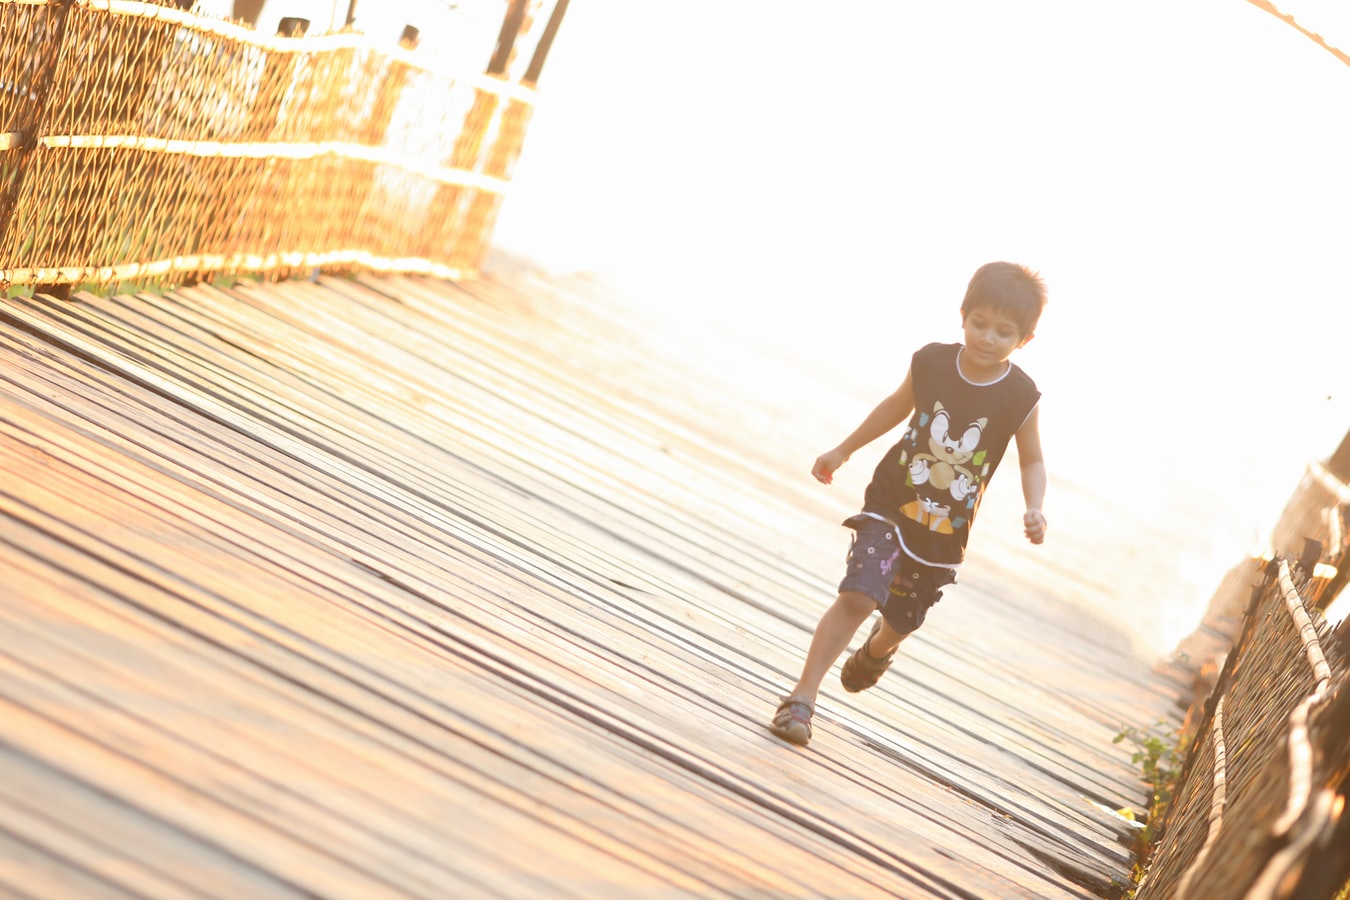 Child Development and Milestones: Your 6-year-old child